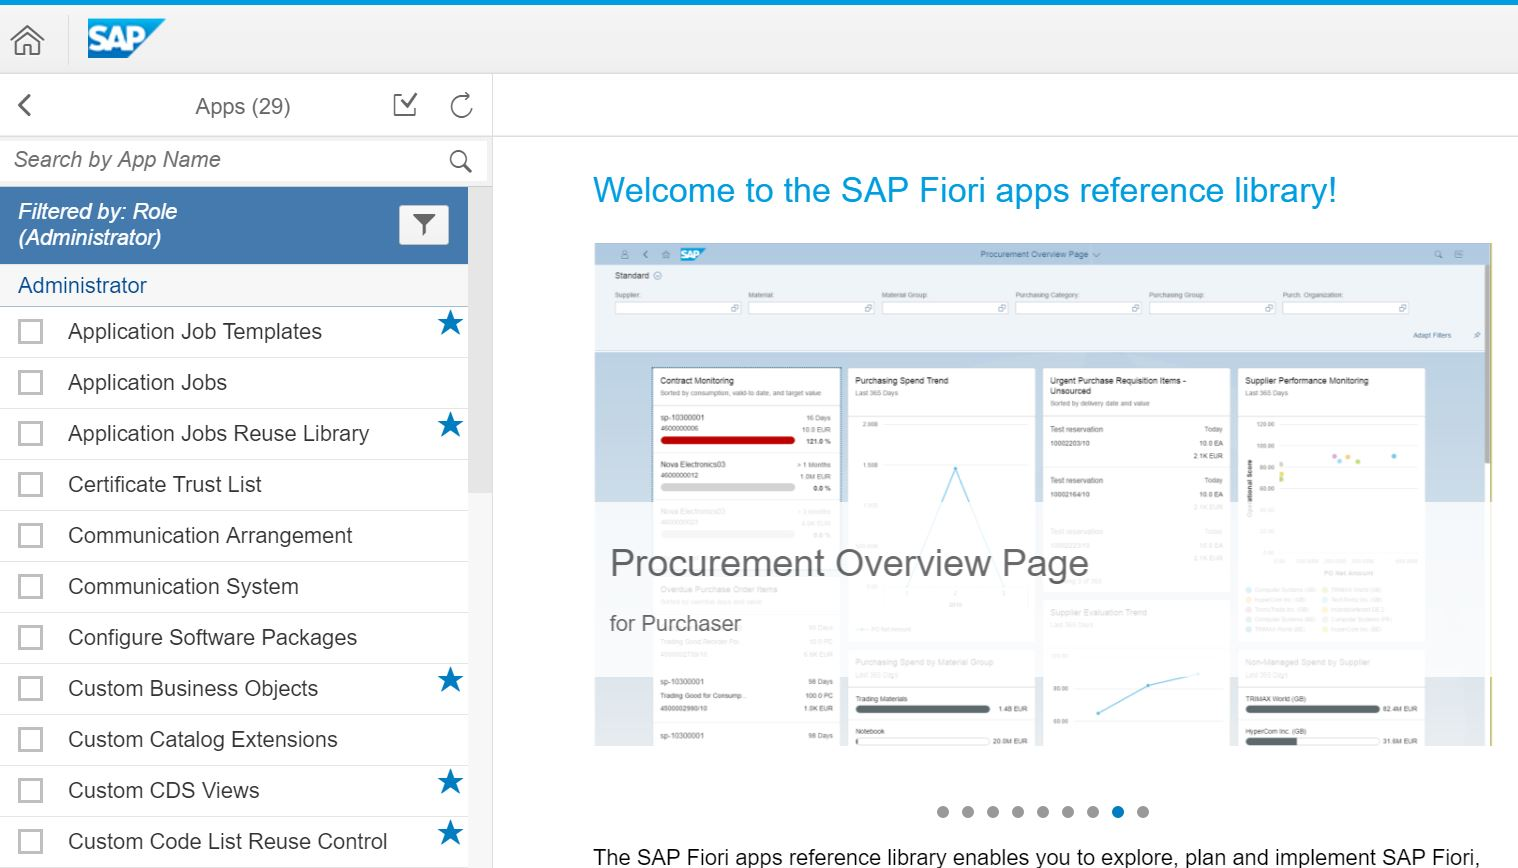 Leading s4hana ux role based for app discovery and activation this blog shows how following the fiori design principle of role based speeds this process ensuring the optimal fiori bang for your buck on s4hana projects 1betcityfo Gallery